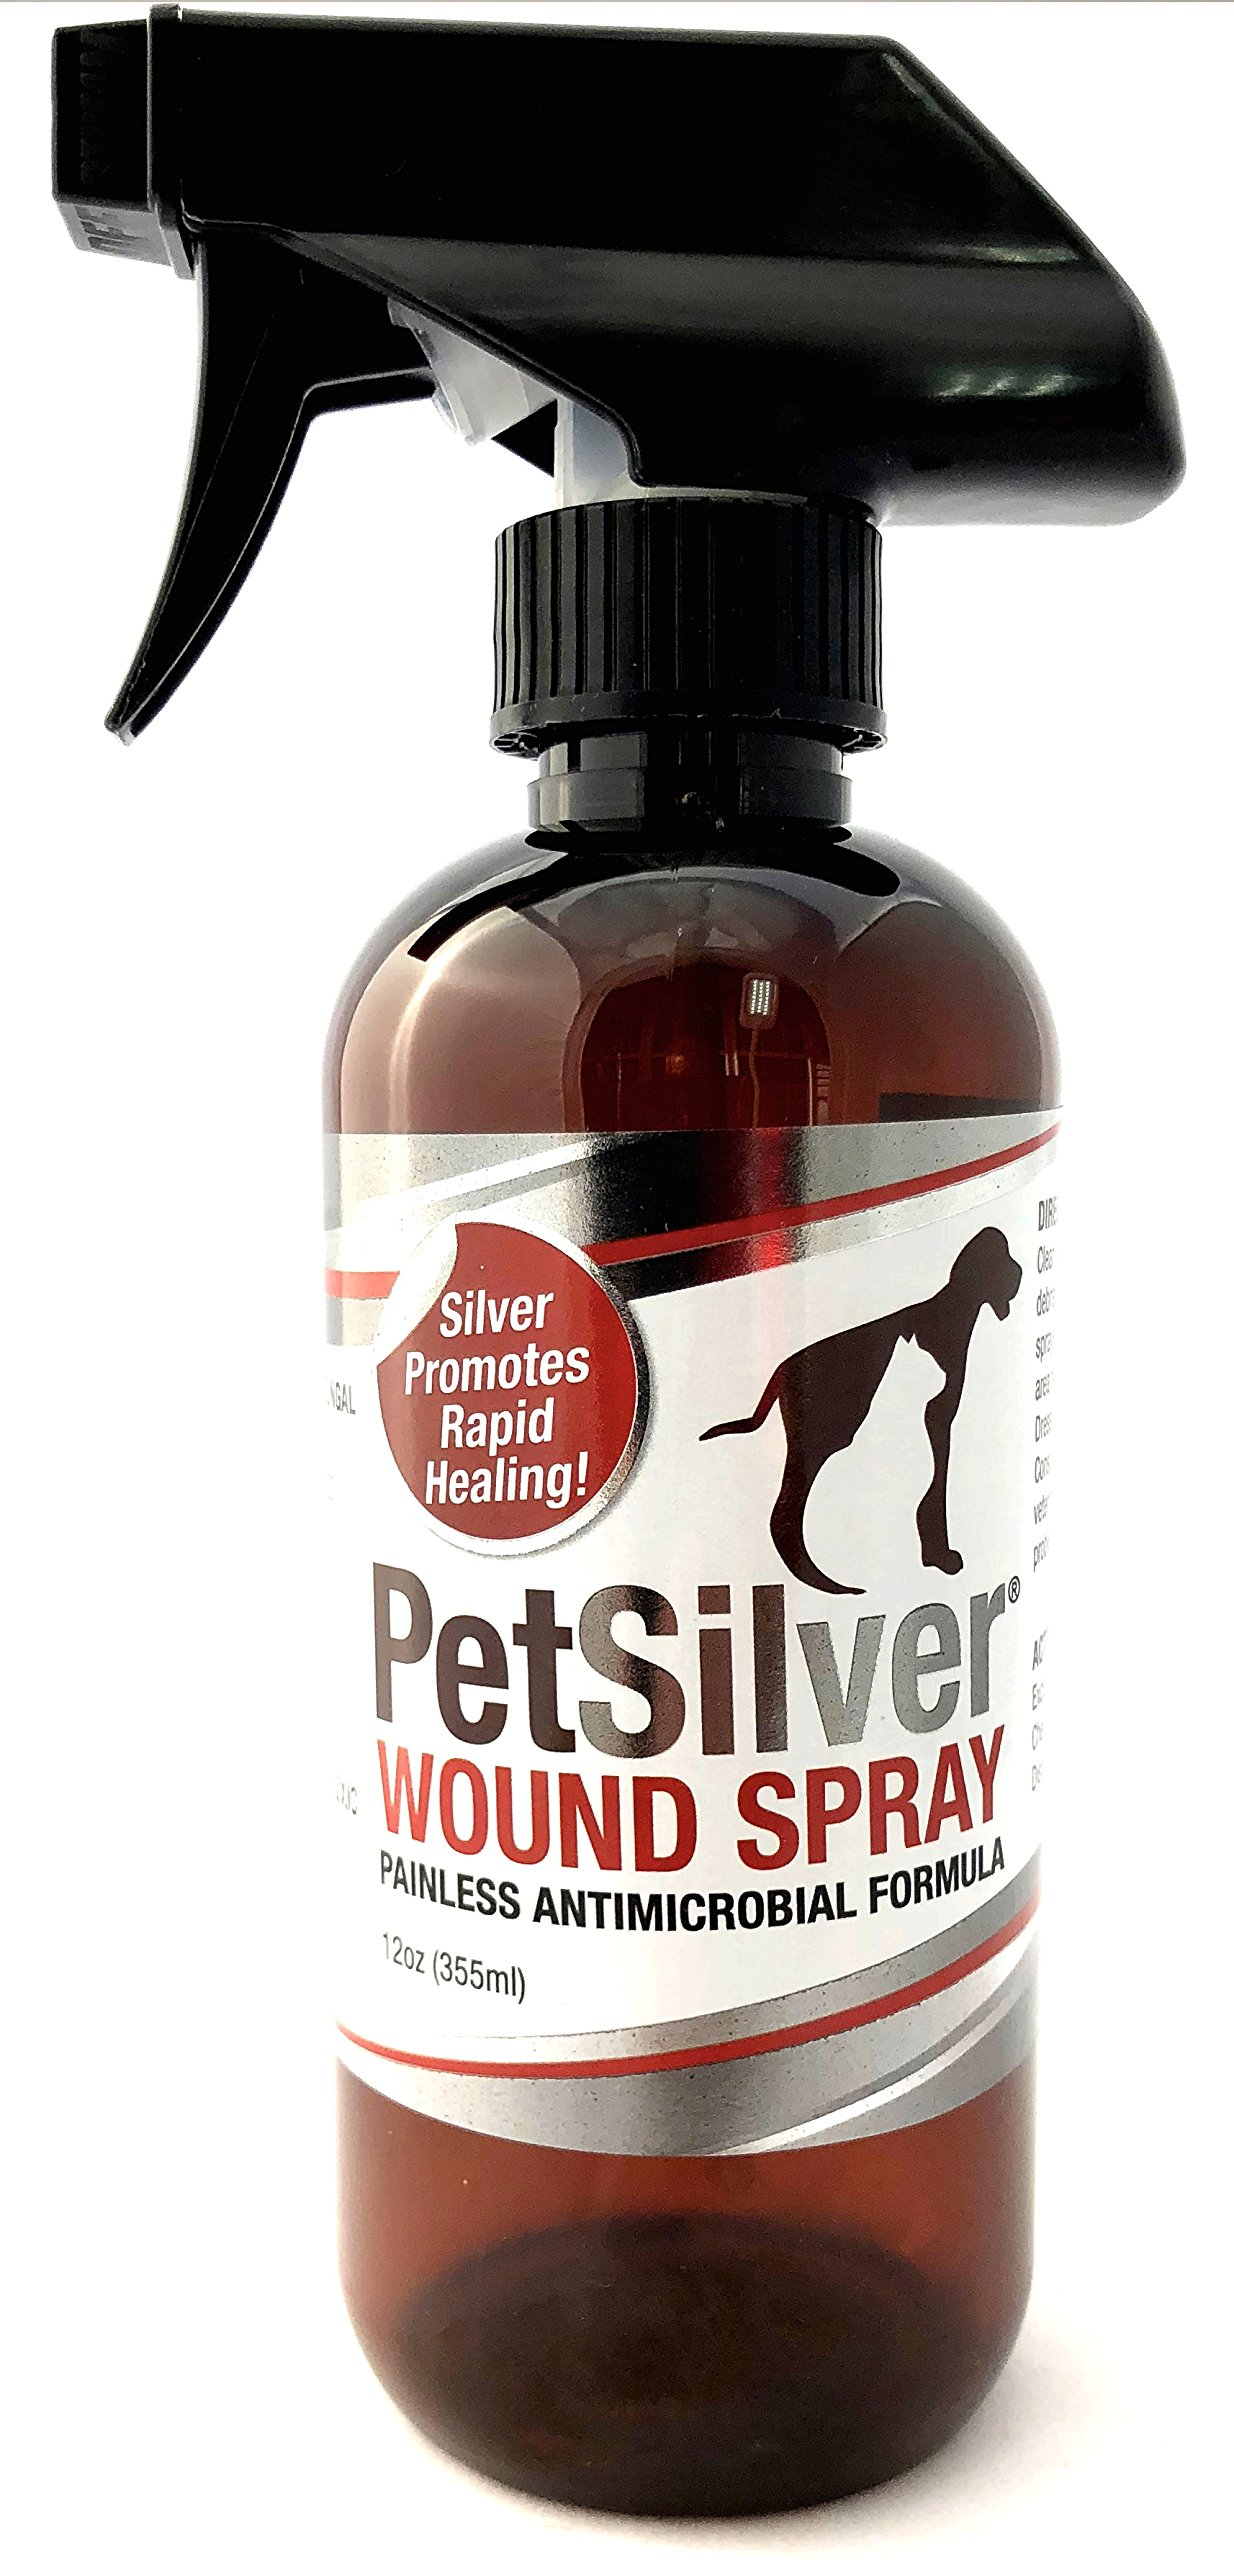 PetSilver Wound Spray with Chelated Silver 50 ppm.Antimicrobial Wound Care for Cats,Dogs & Horses.Rapid Healing,Hot Spots,Burns,Cuts,Scratches,Itchy Skin,Yeast and Bacteria Infections.Amazing Results!